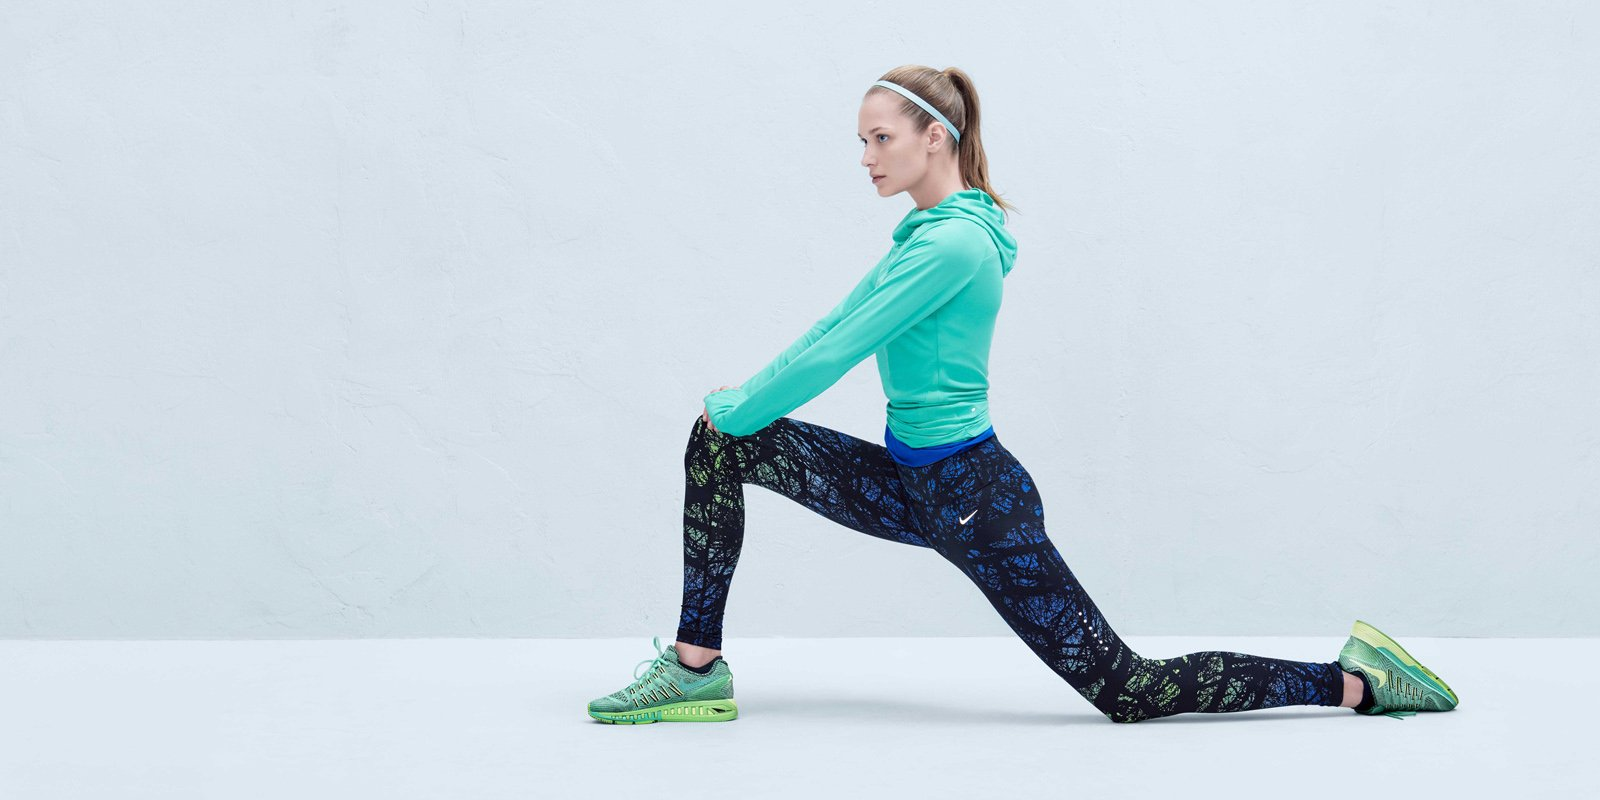 NikeWomen_FA15_Lookbook_RN_1_original.jpg